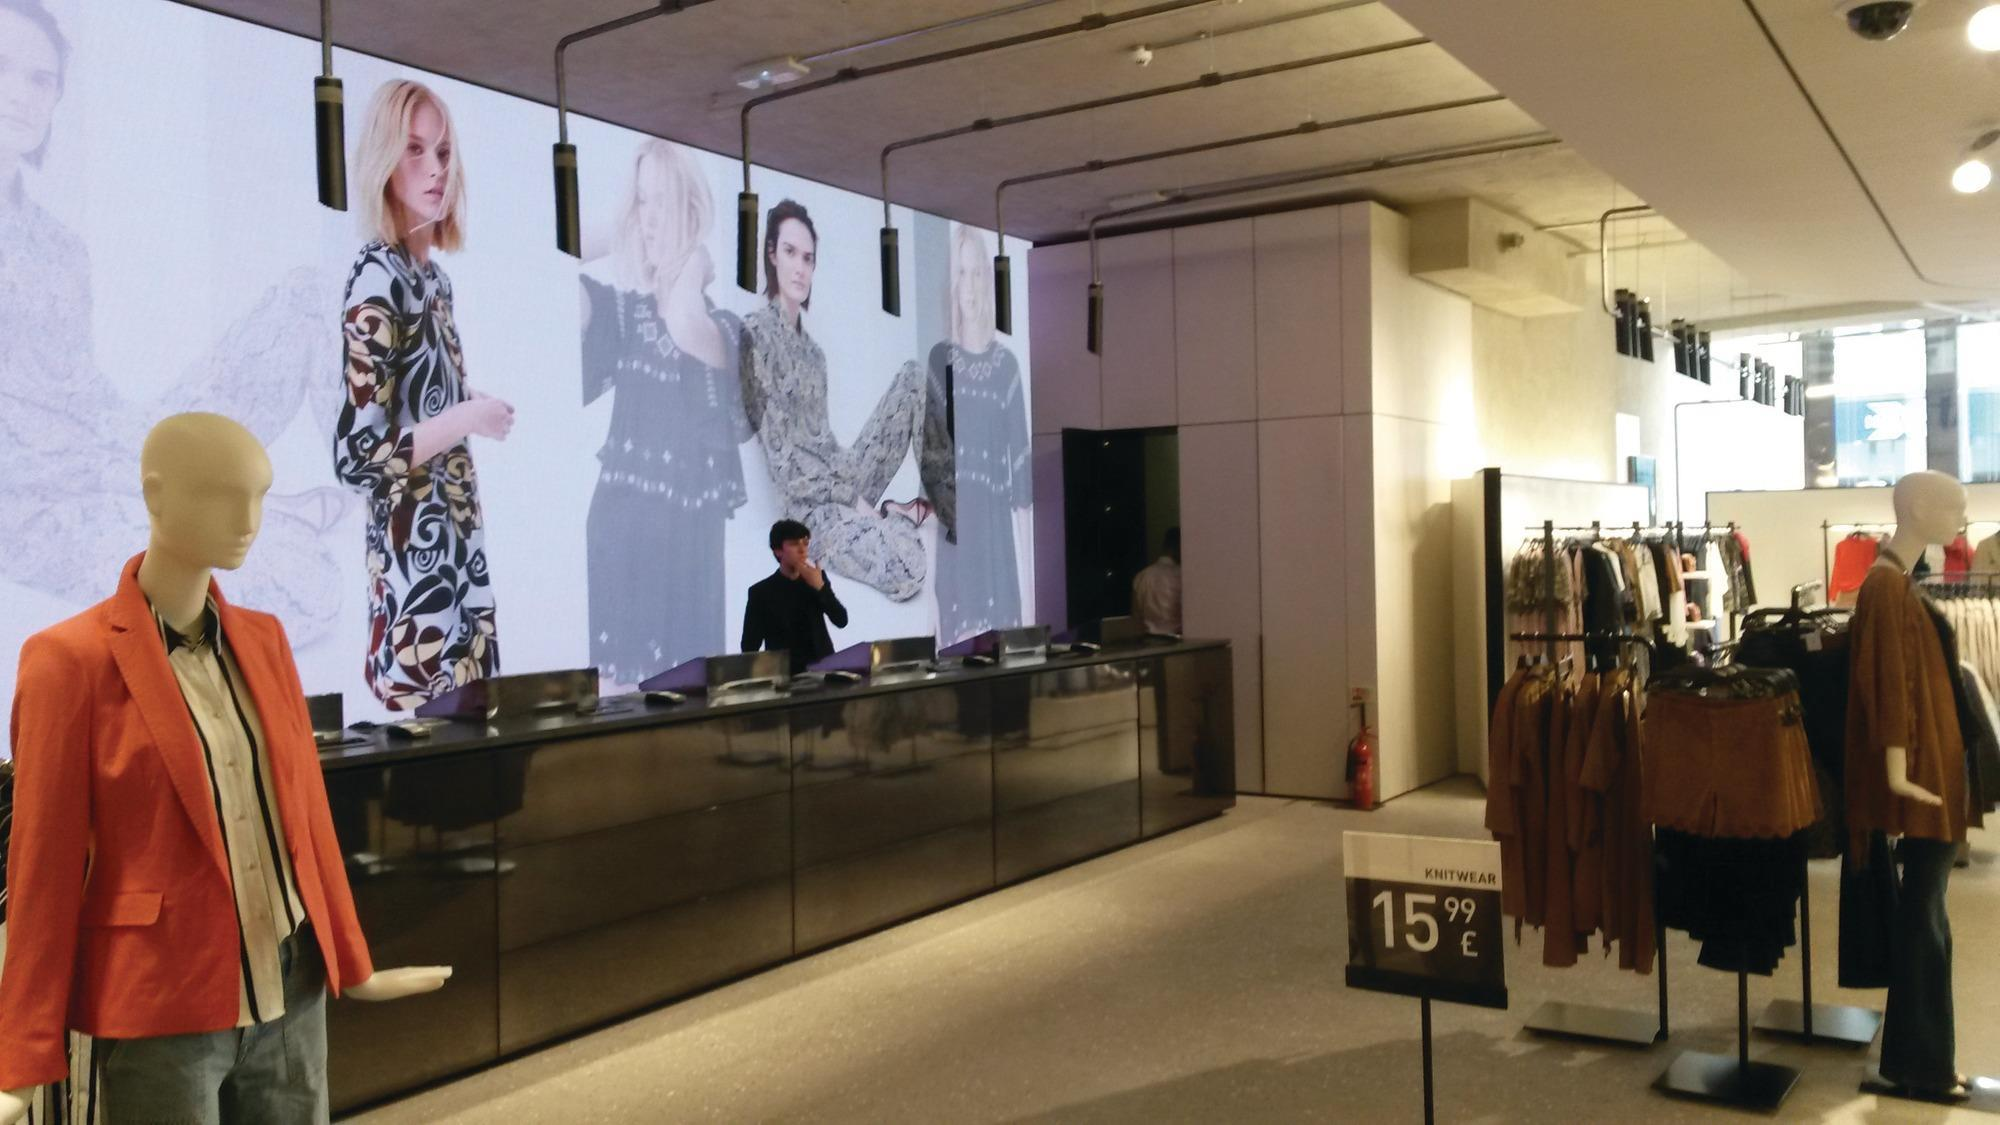 zara store design Learn more about career opportunities at zara usa  zara began as a small clothing store in la coruna  both of which heavily inform the design process.